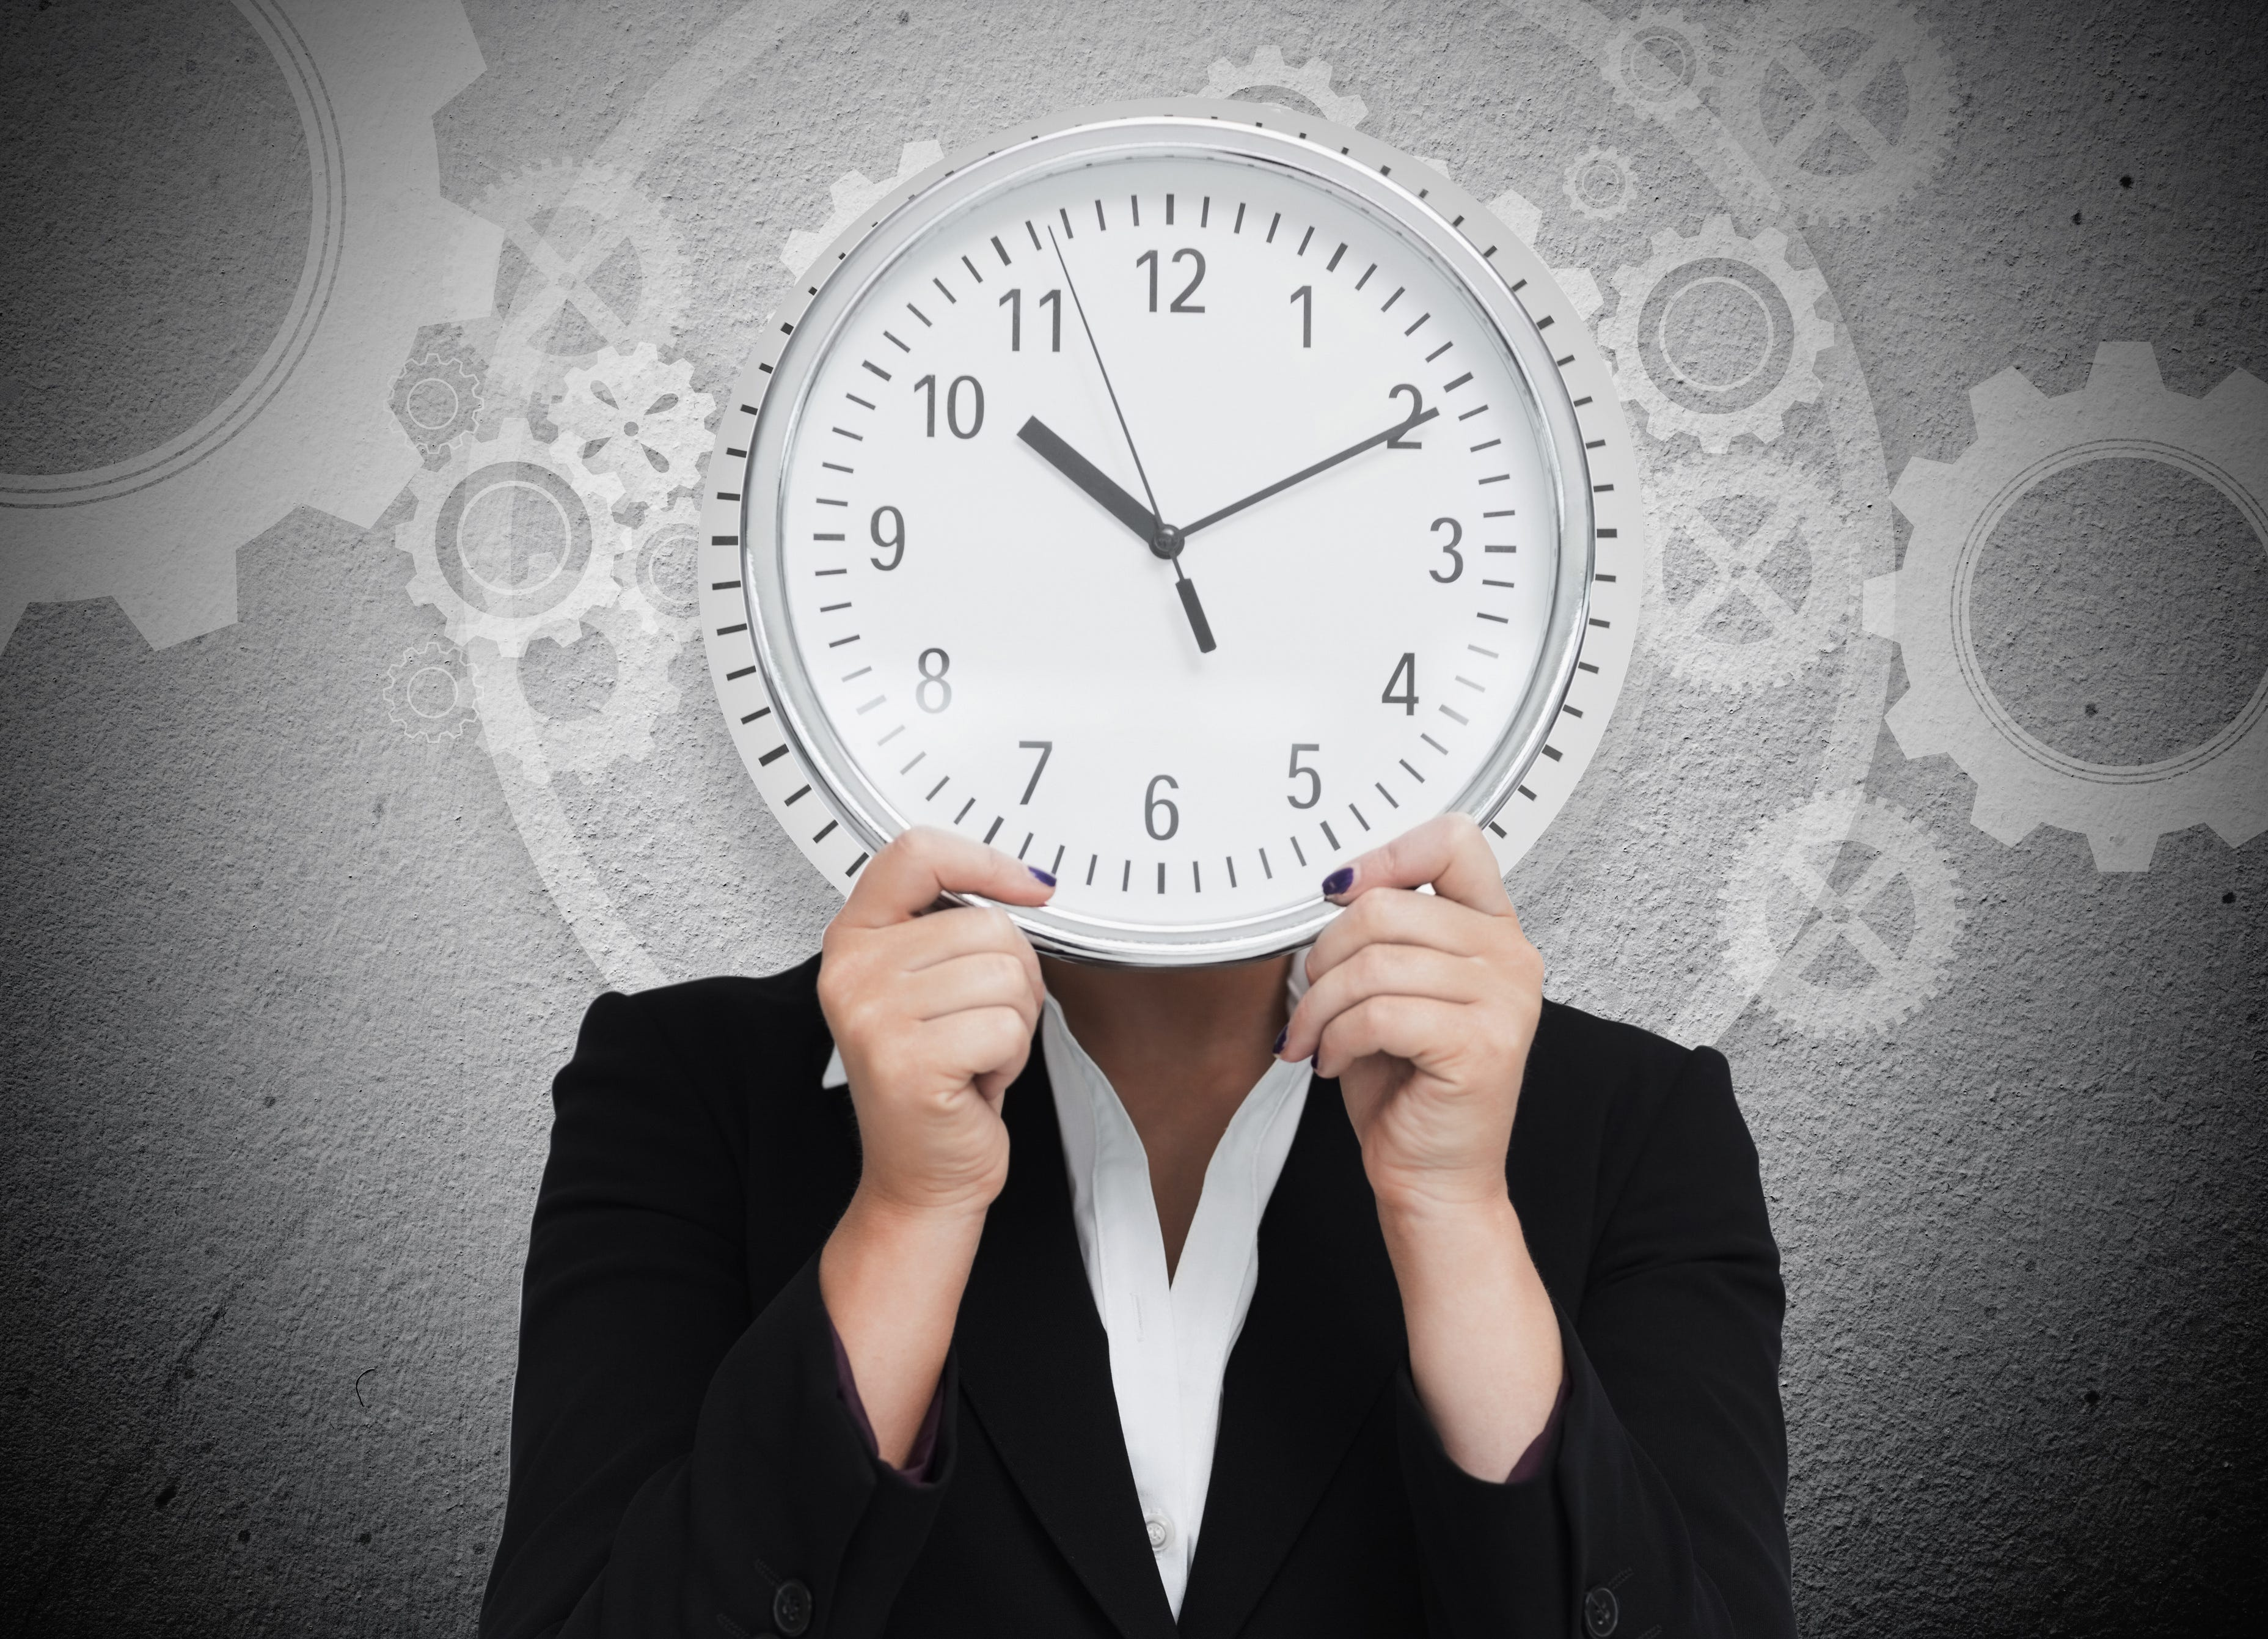 Find out how long you'll live by answering 4 questions